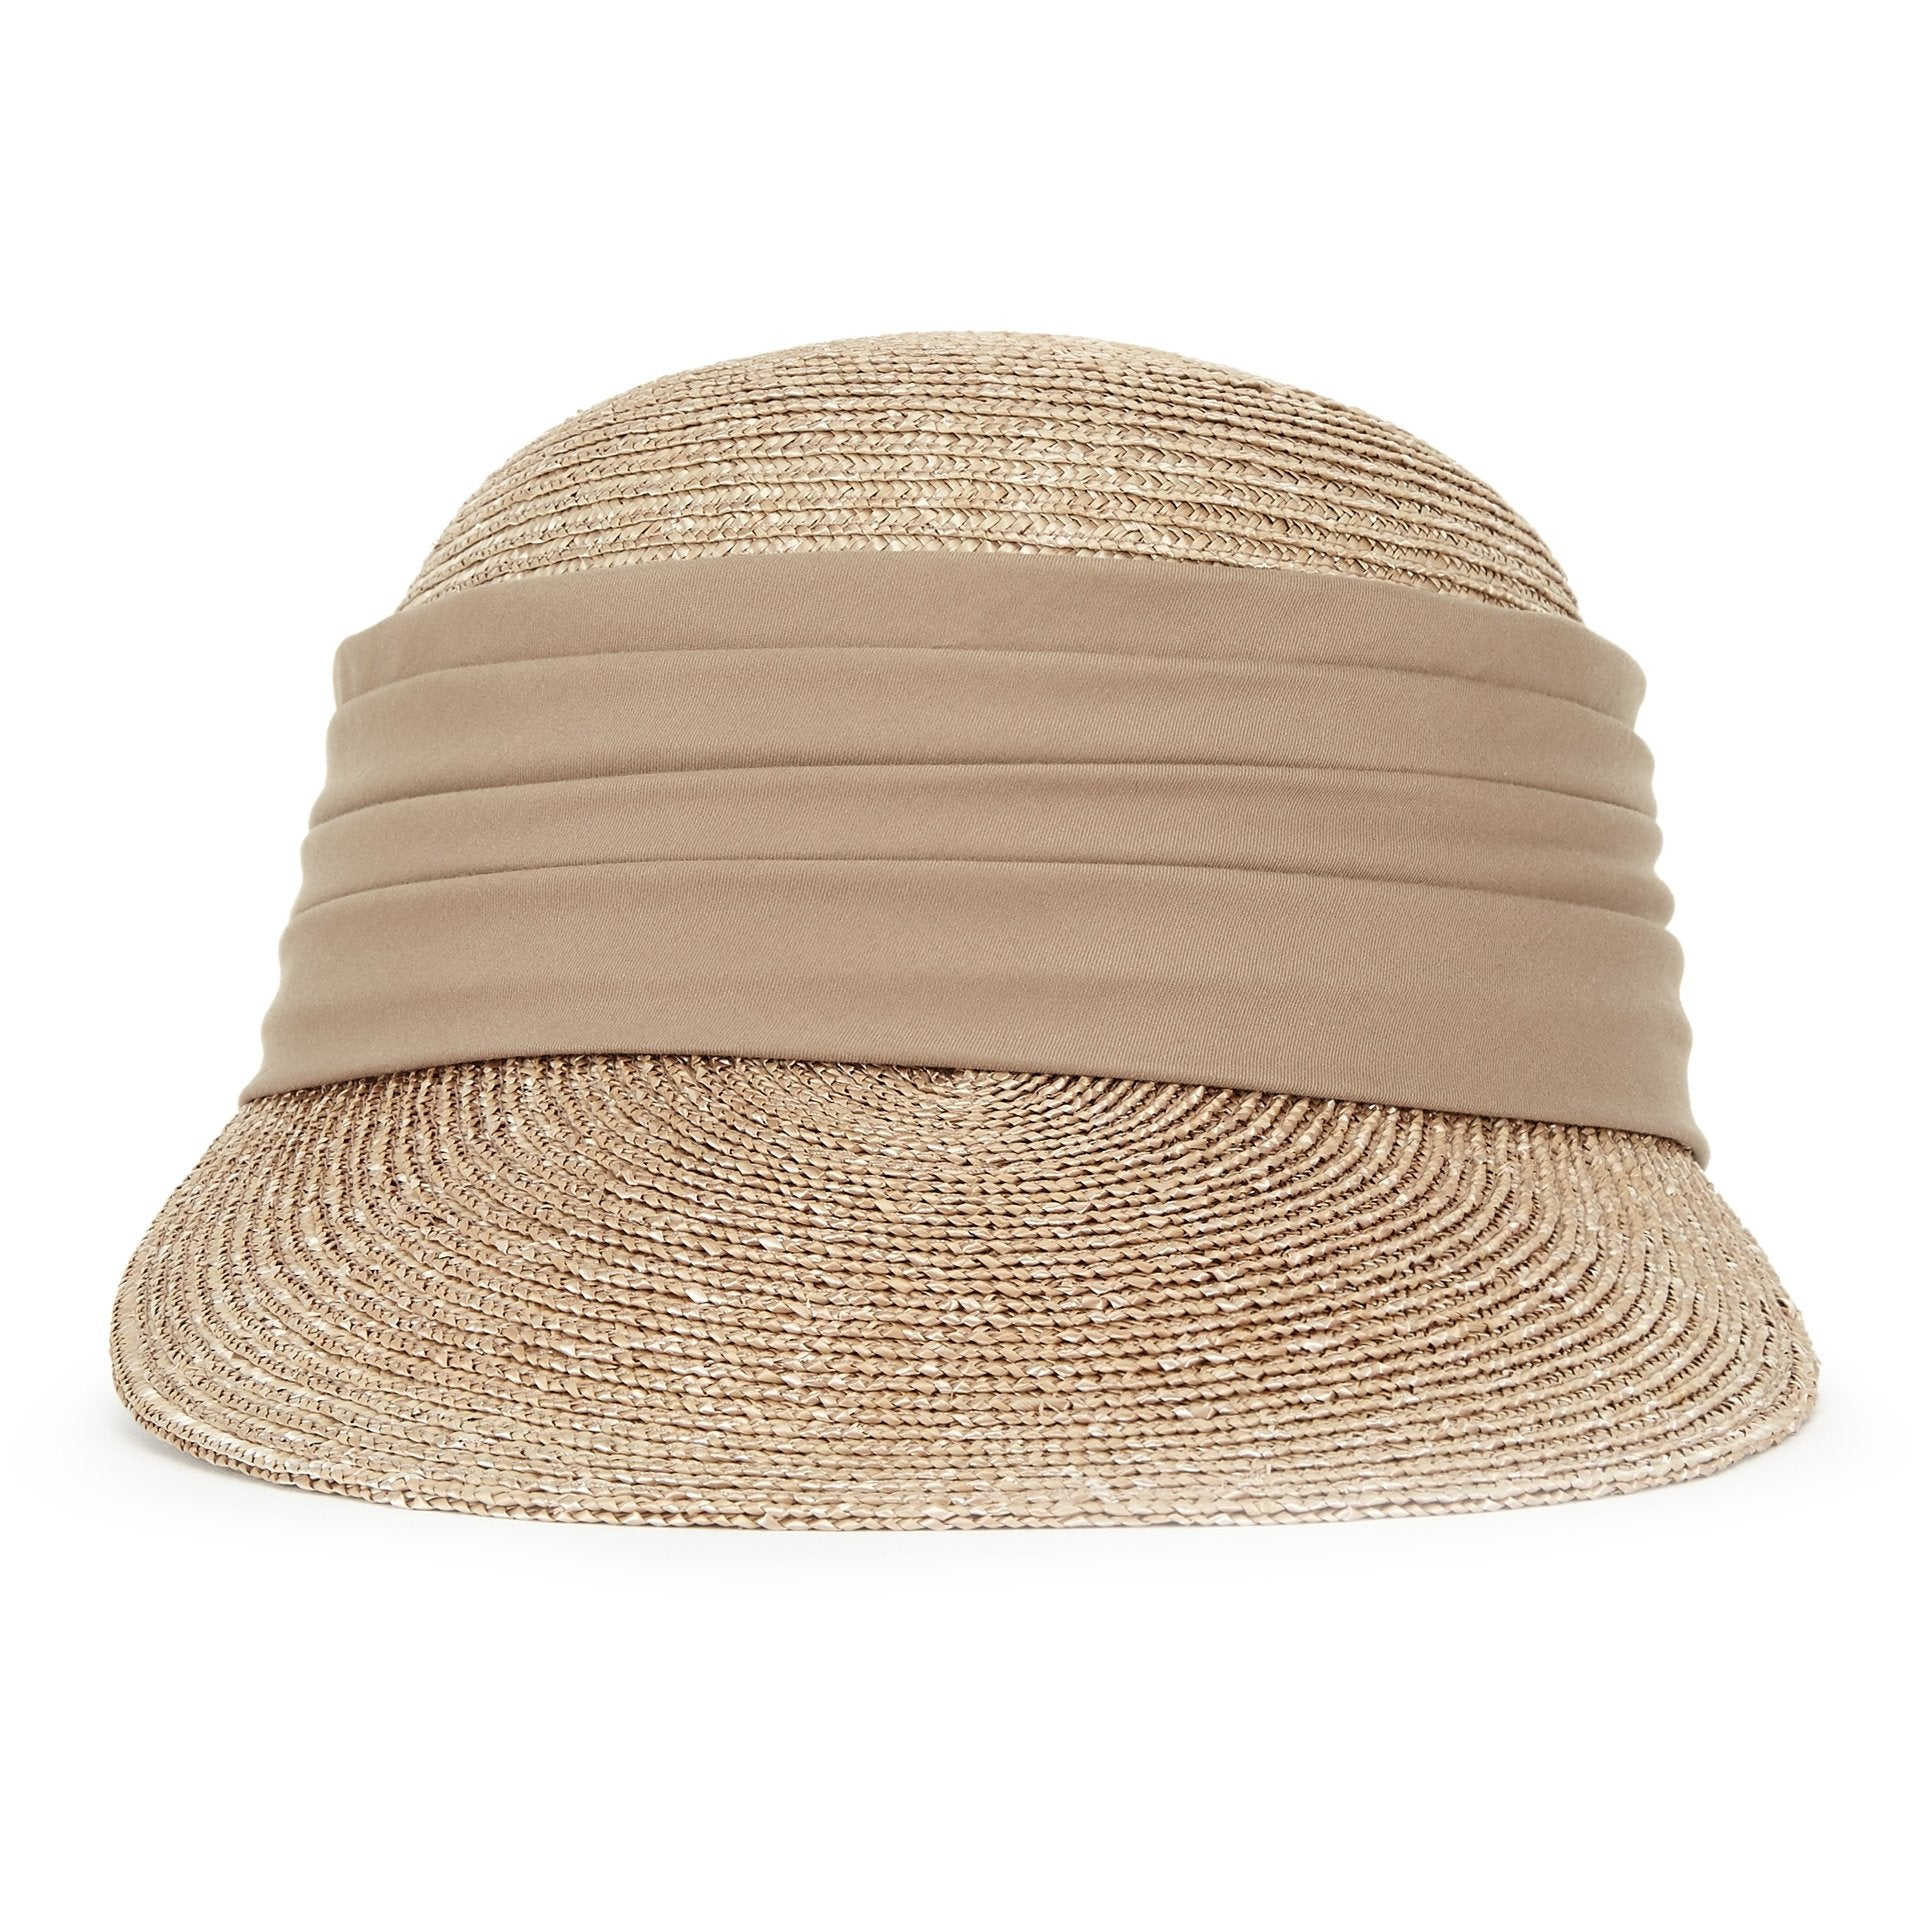 Serina Straw baseball cap - Women's hats - Lock & Co. Hatters London UK